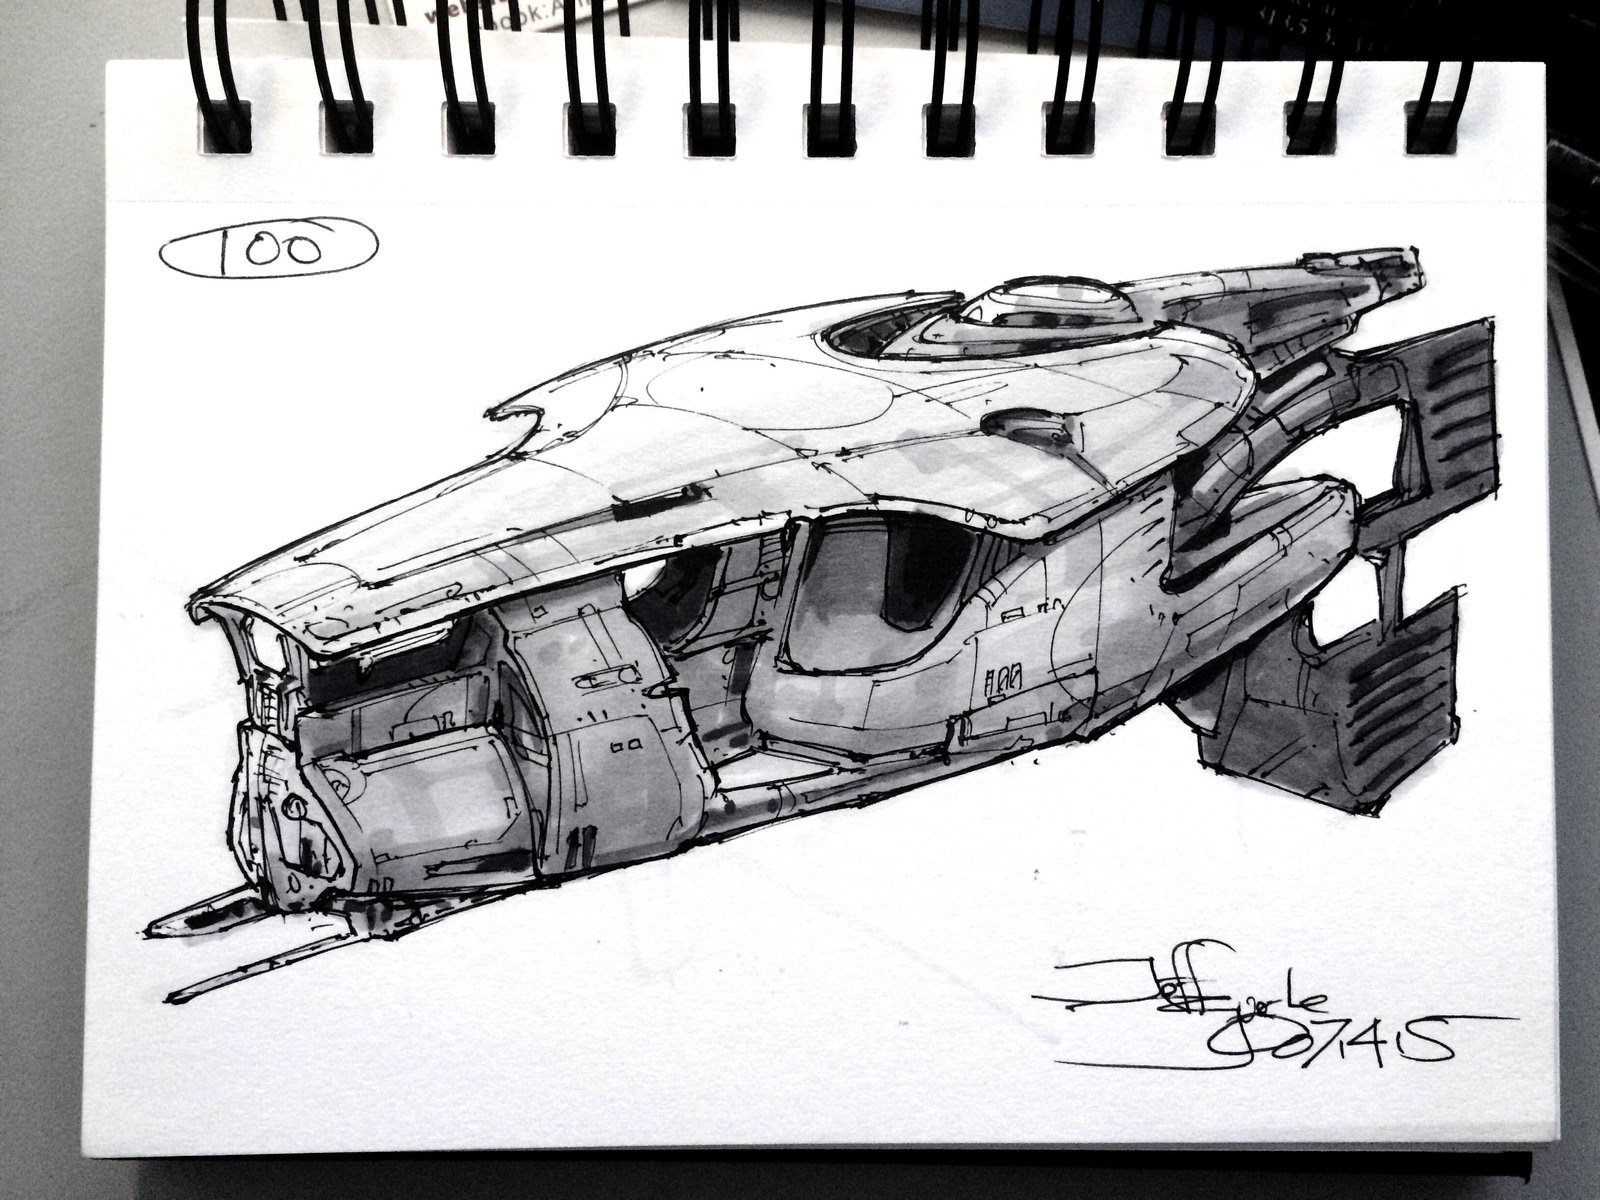 SpaceshipADay 100